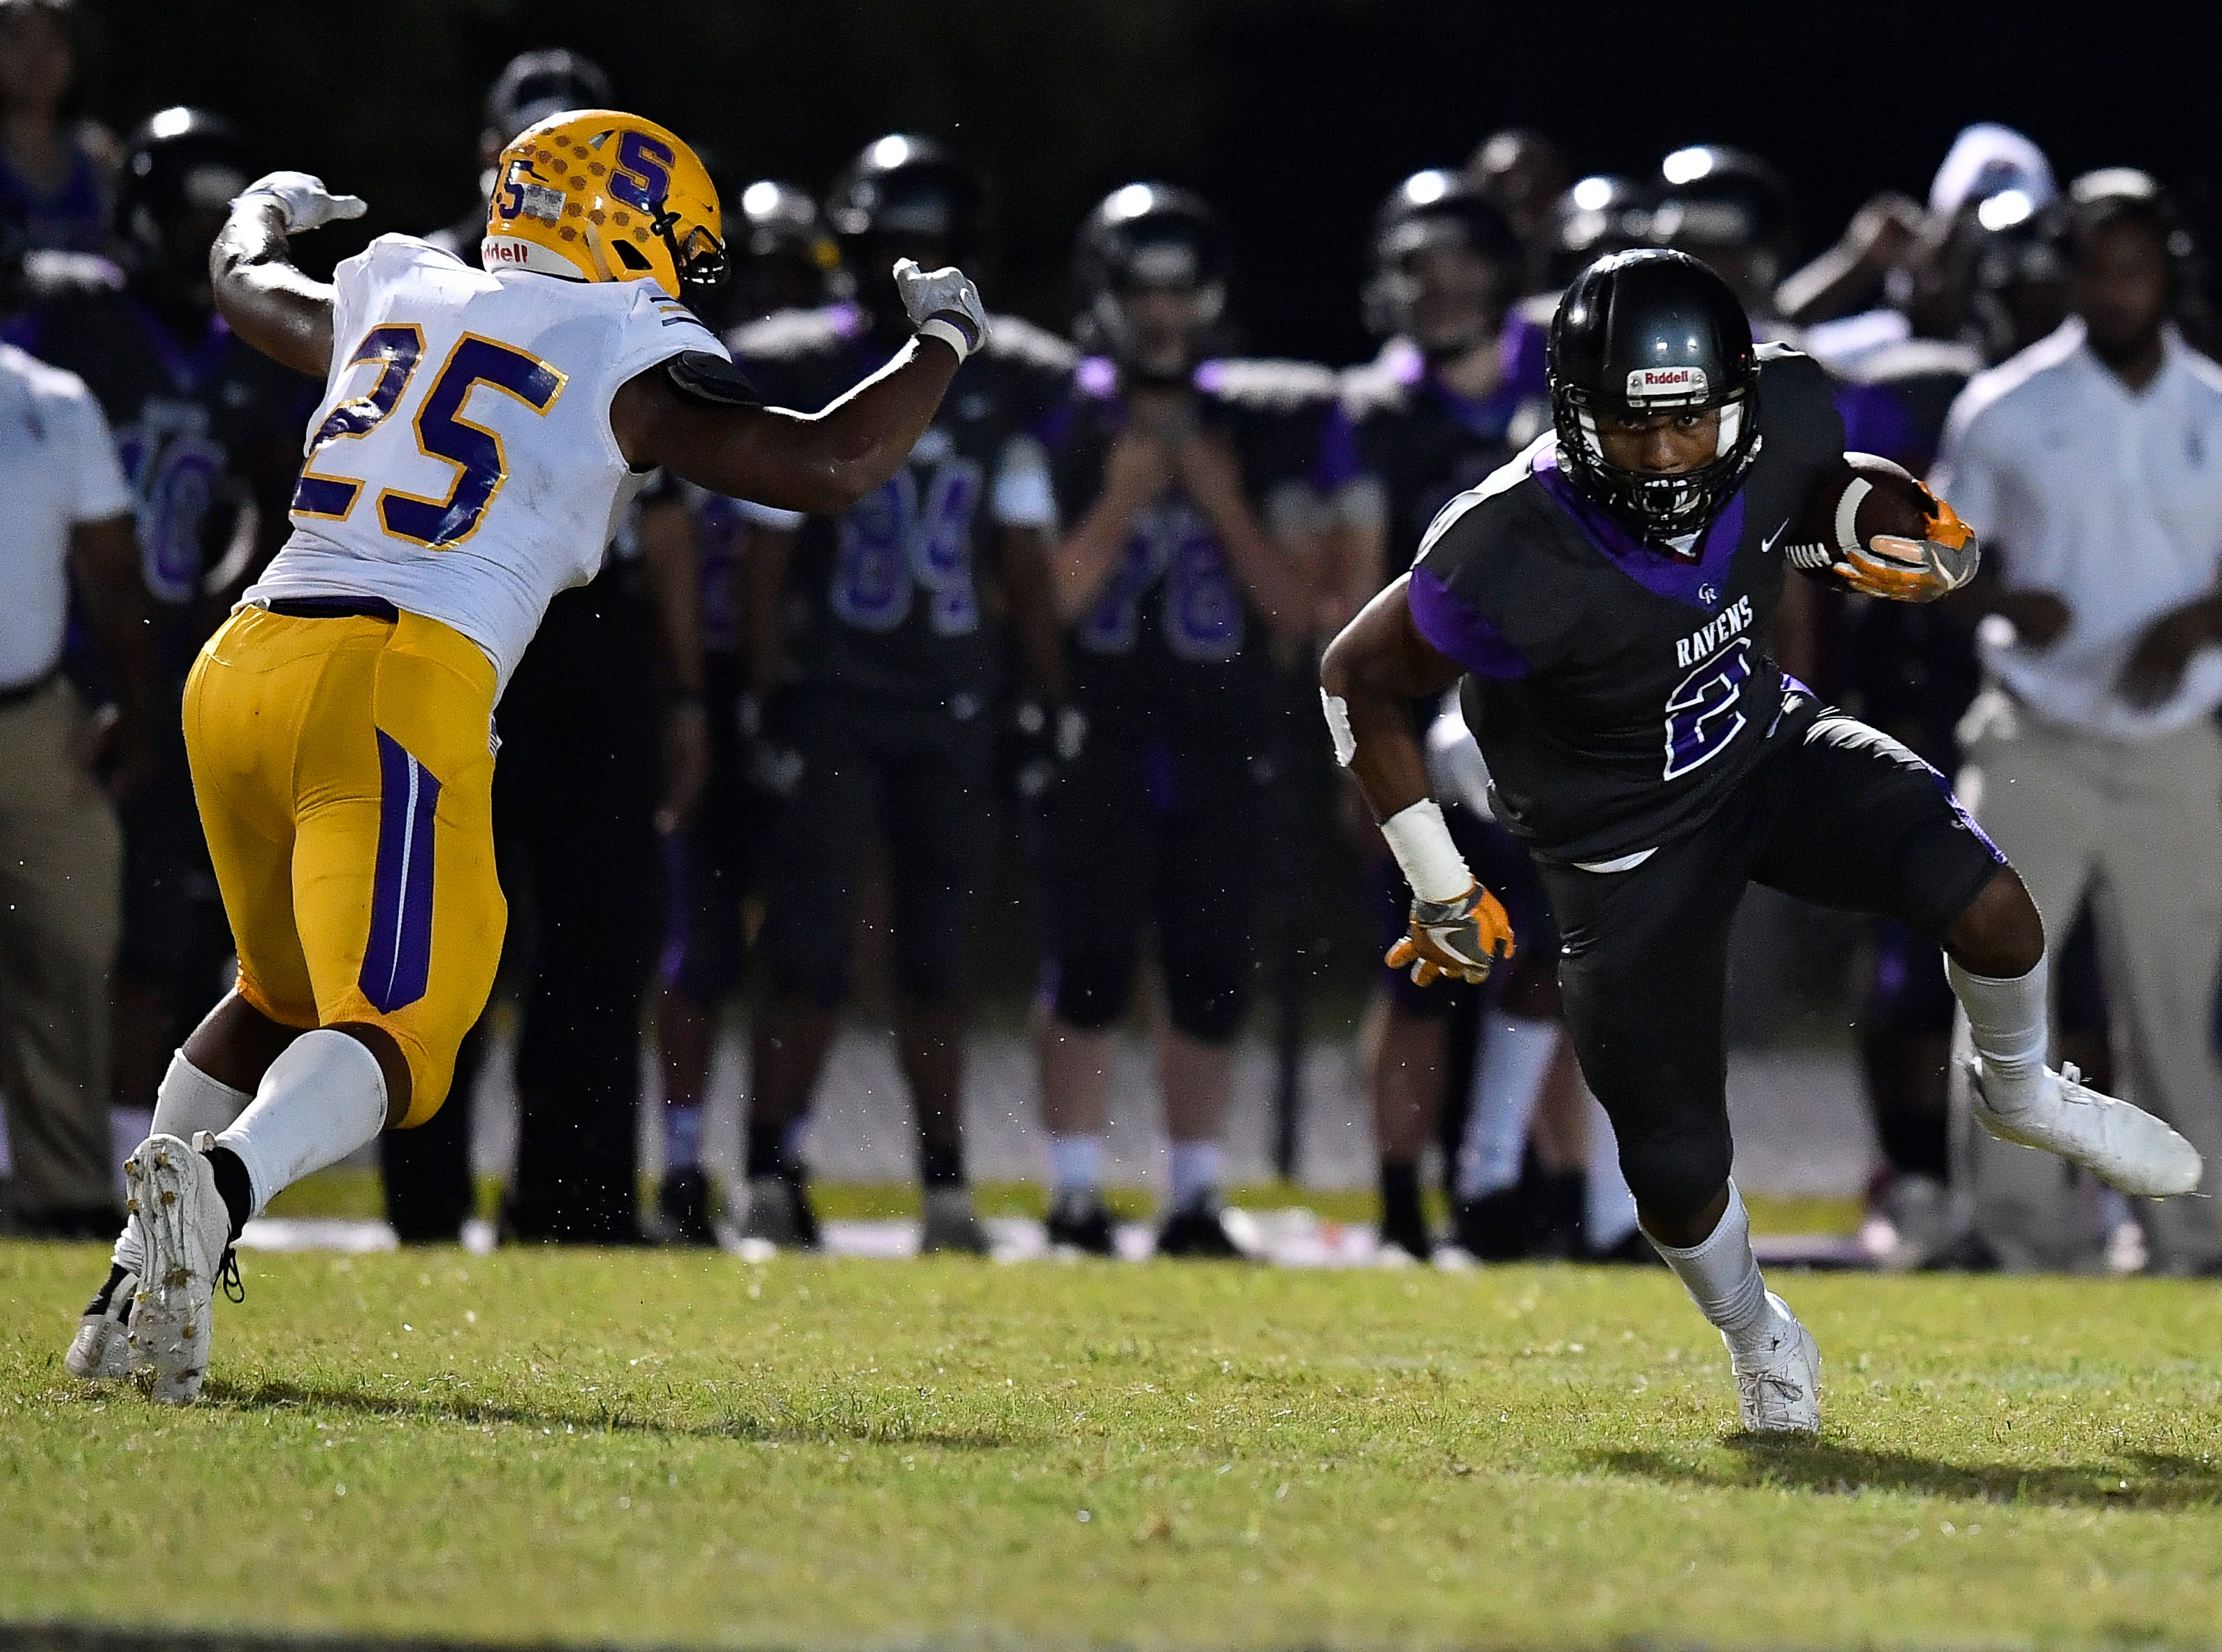 Cane Ridge wide receiver Quenton Barnes (2) pulls in a pass over Smyrna Josh Bailey (25) at Cane Ridge High School Friday, Sept. 21, 2018, in Nashville, Tenn.